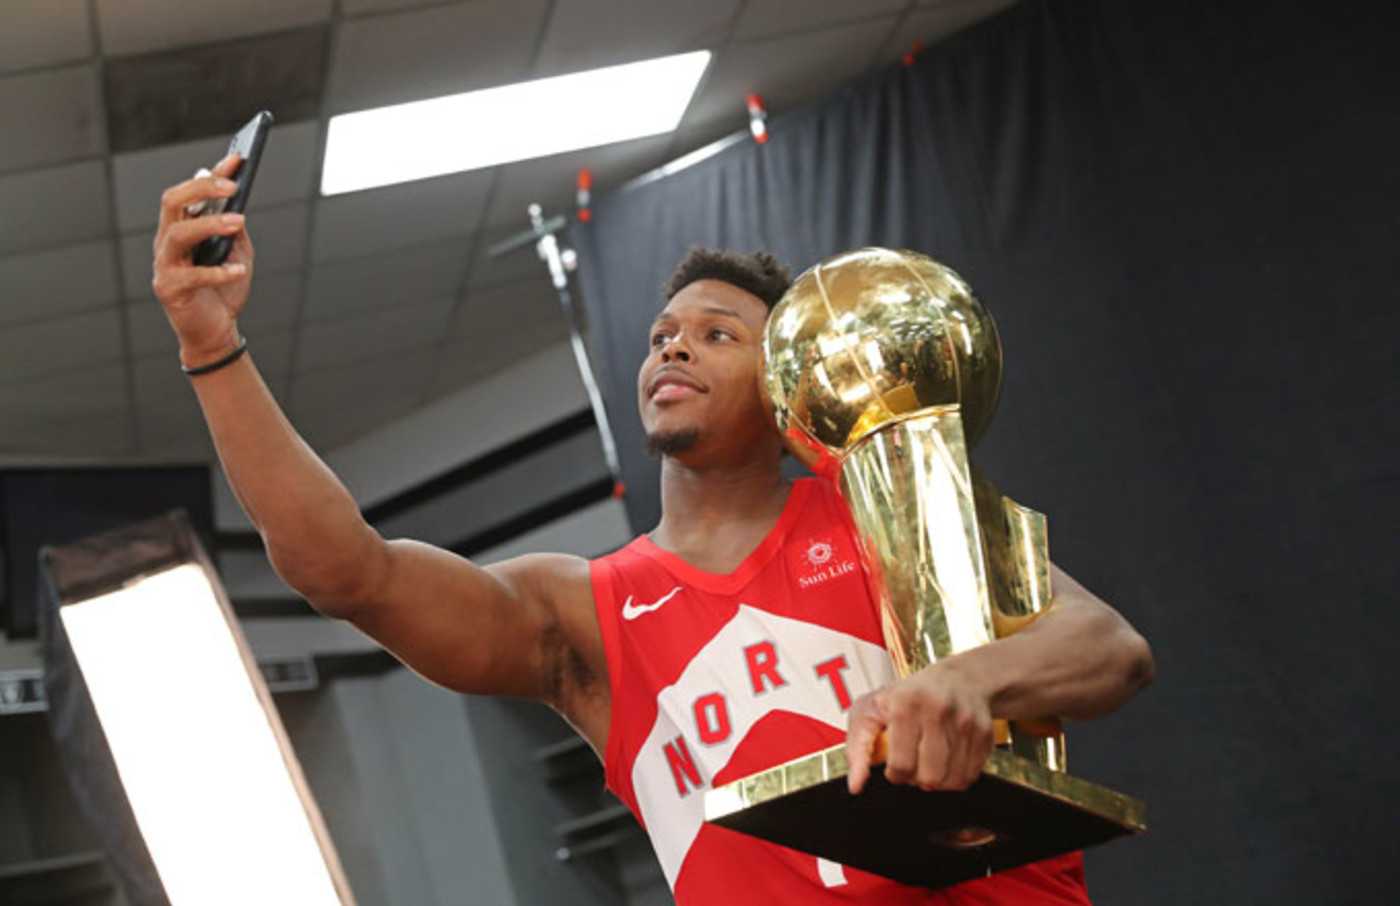 Kyle Lowry takes a selfie with the Larry O'Brien Trophy.